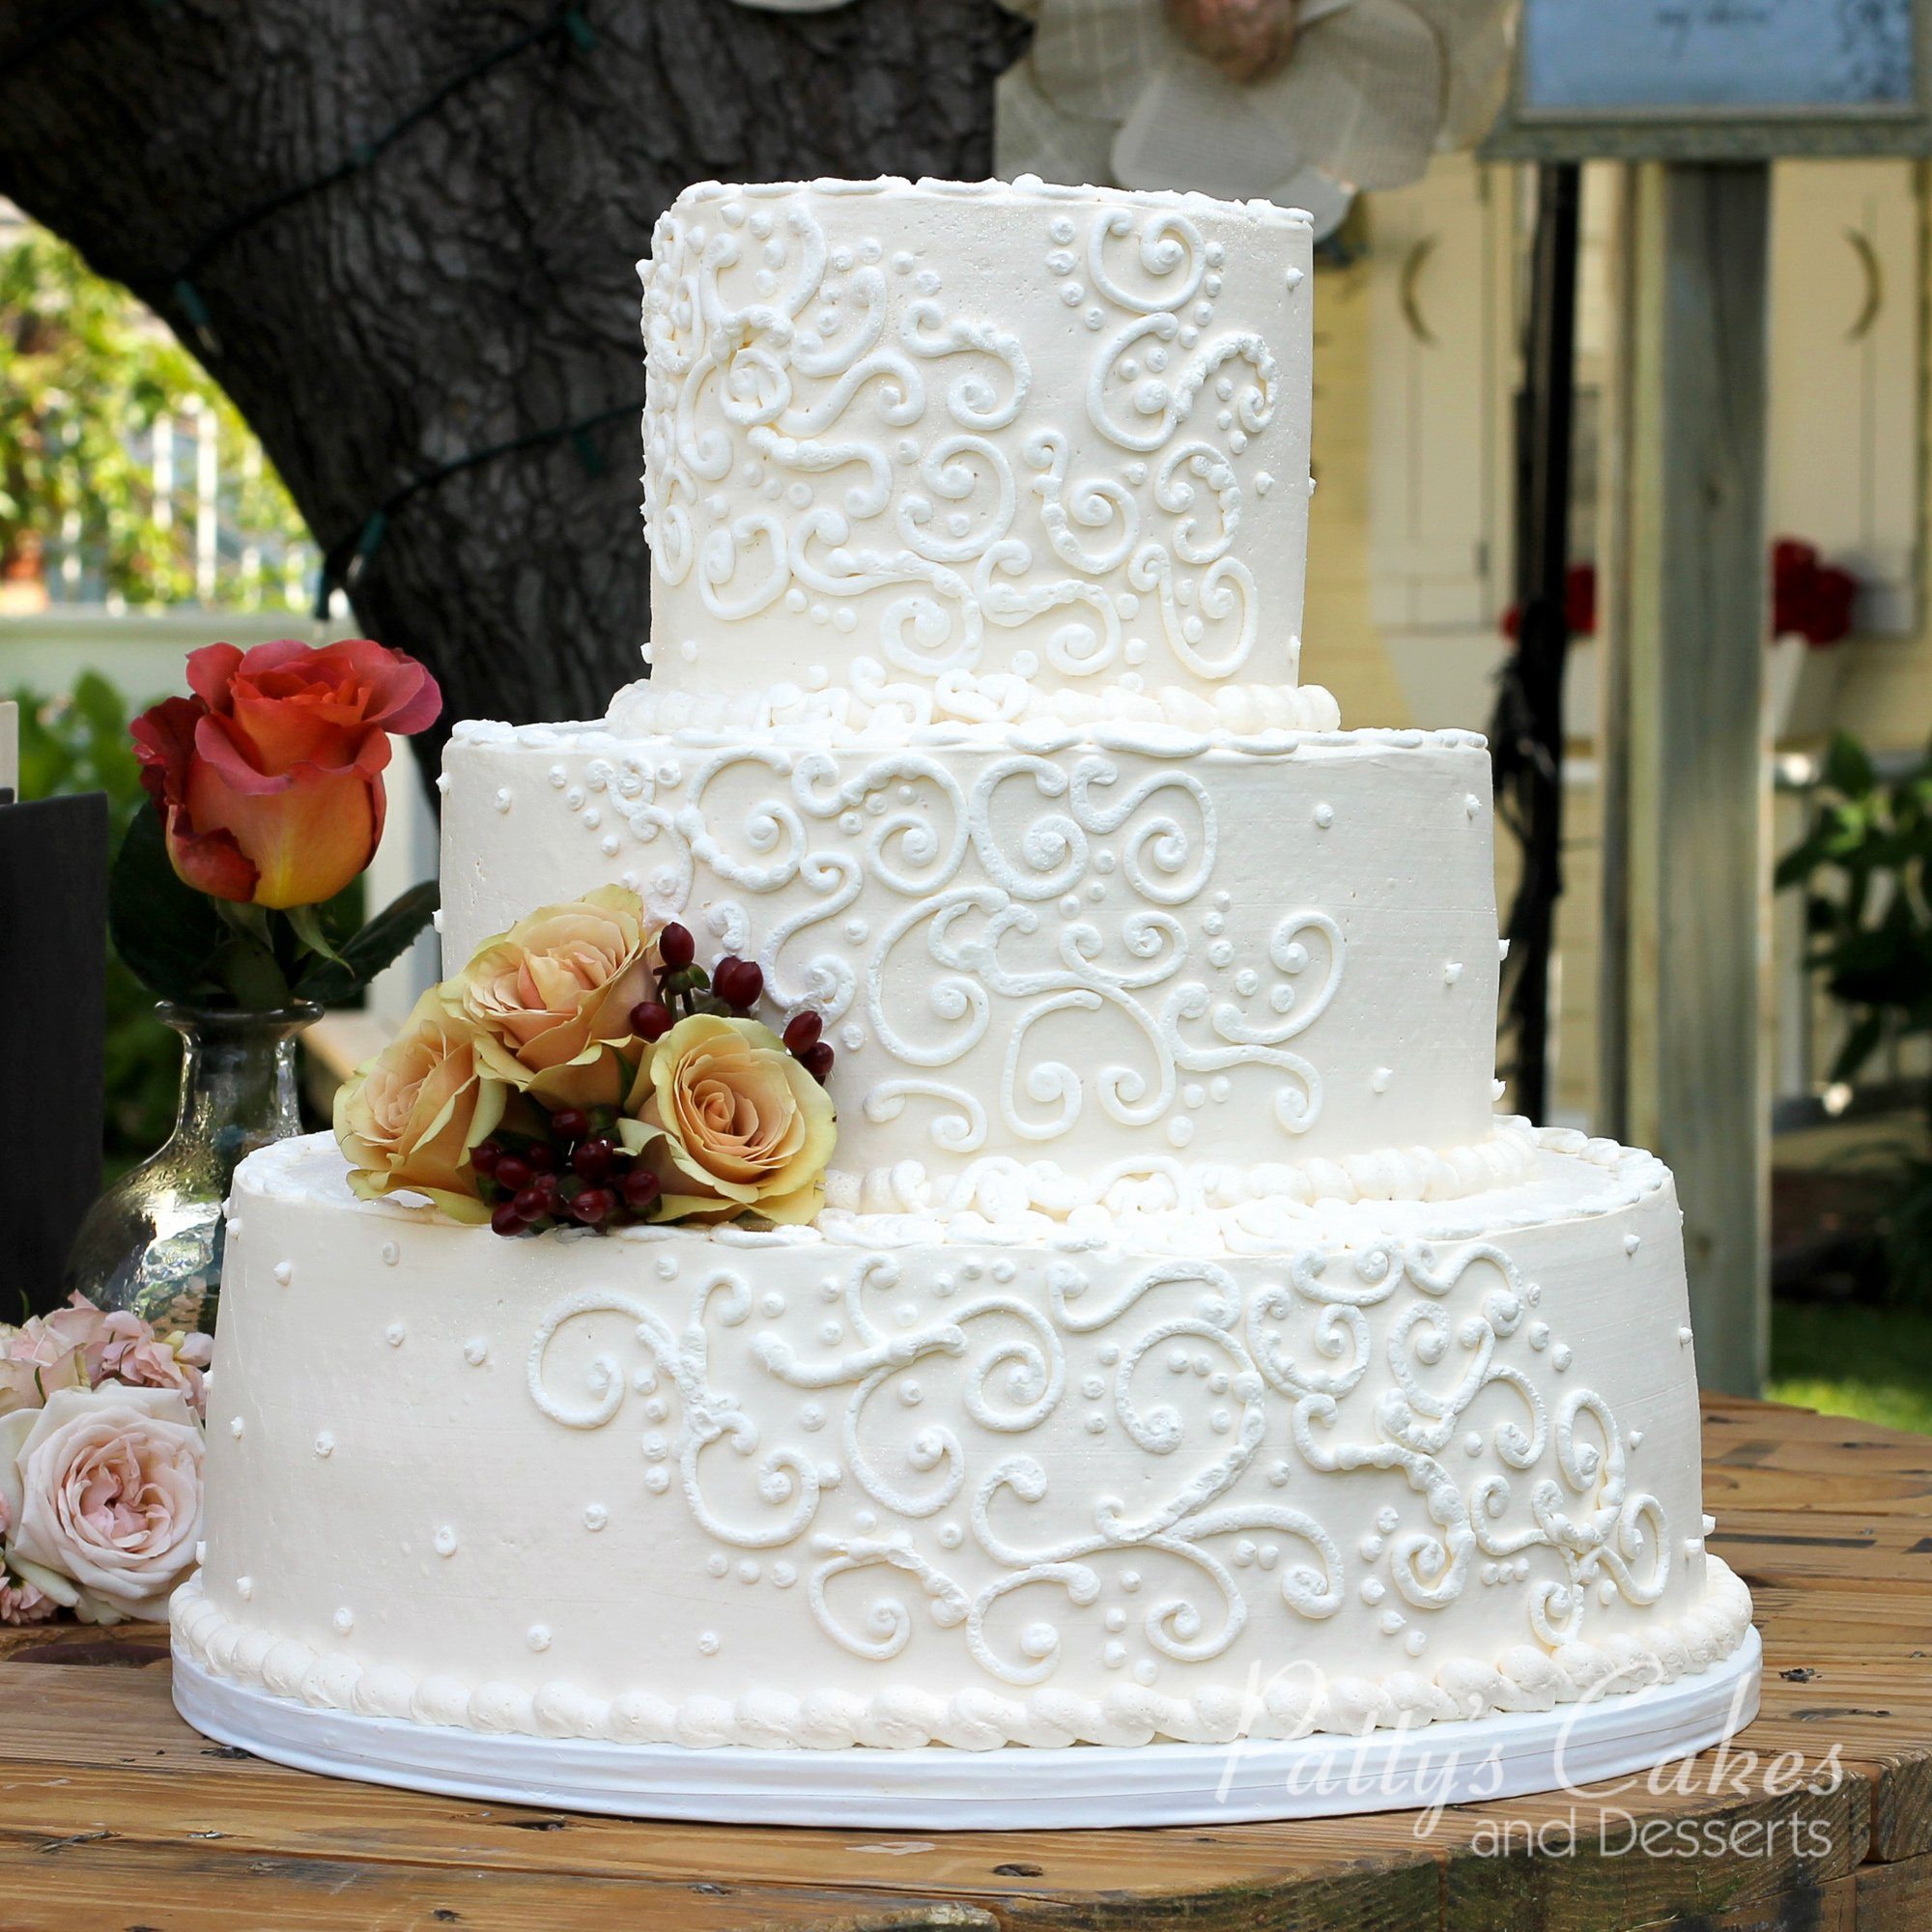 wedding cakes com photo of a wedding cake white 3 tier outside patty s 24101